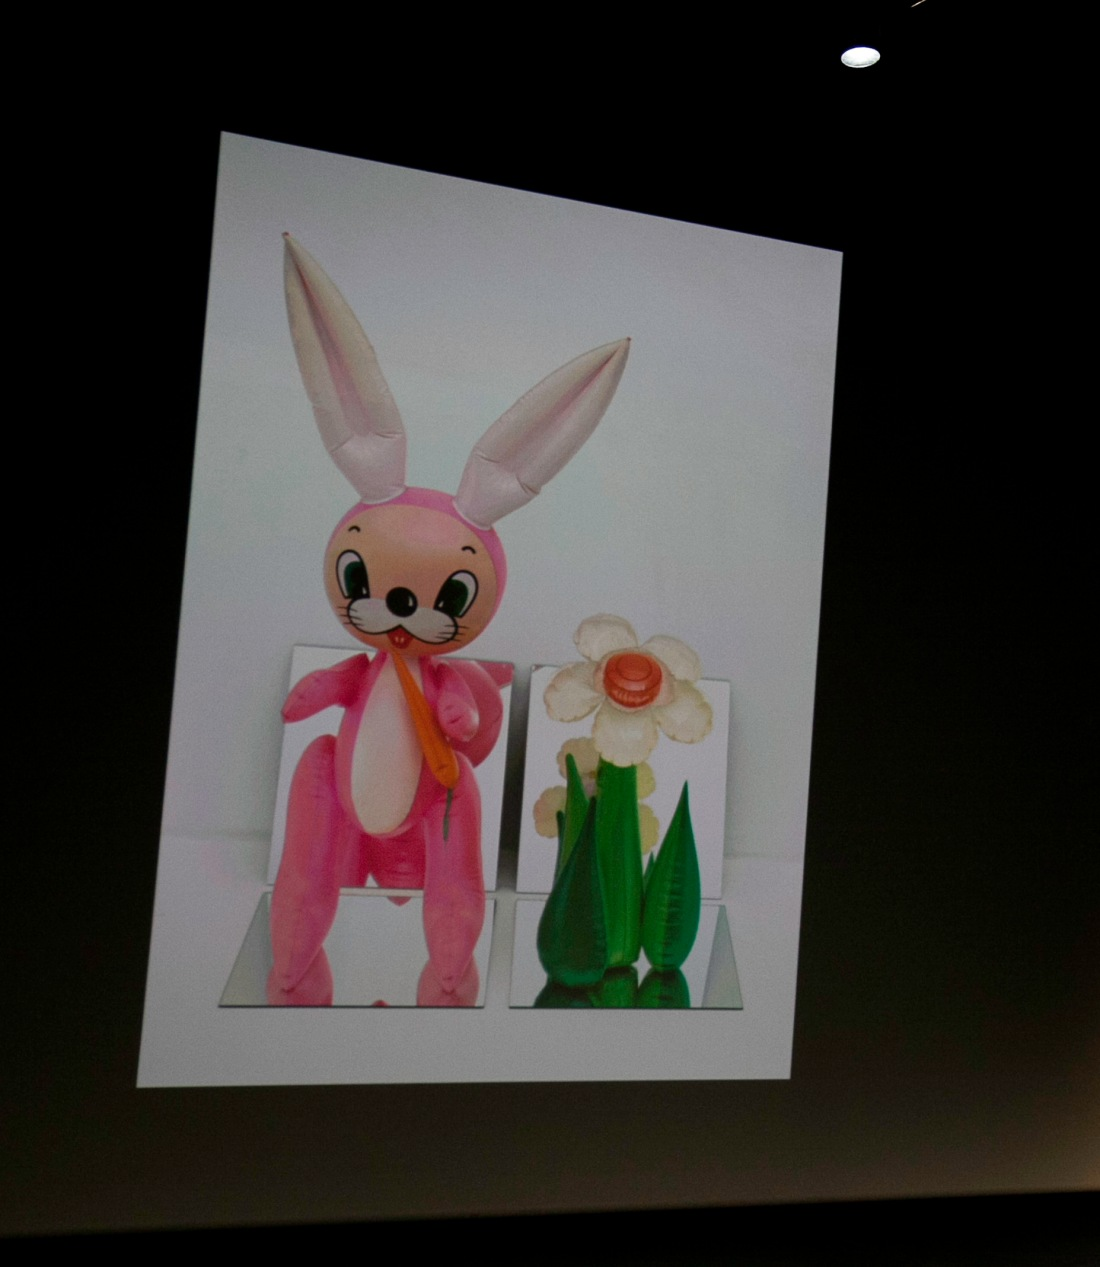 Jeff Koons Rabbit